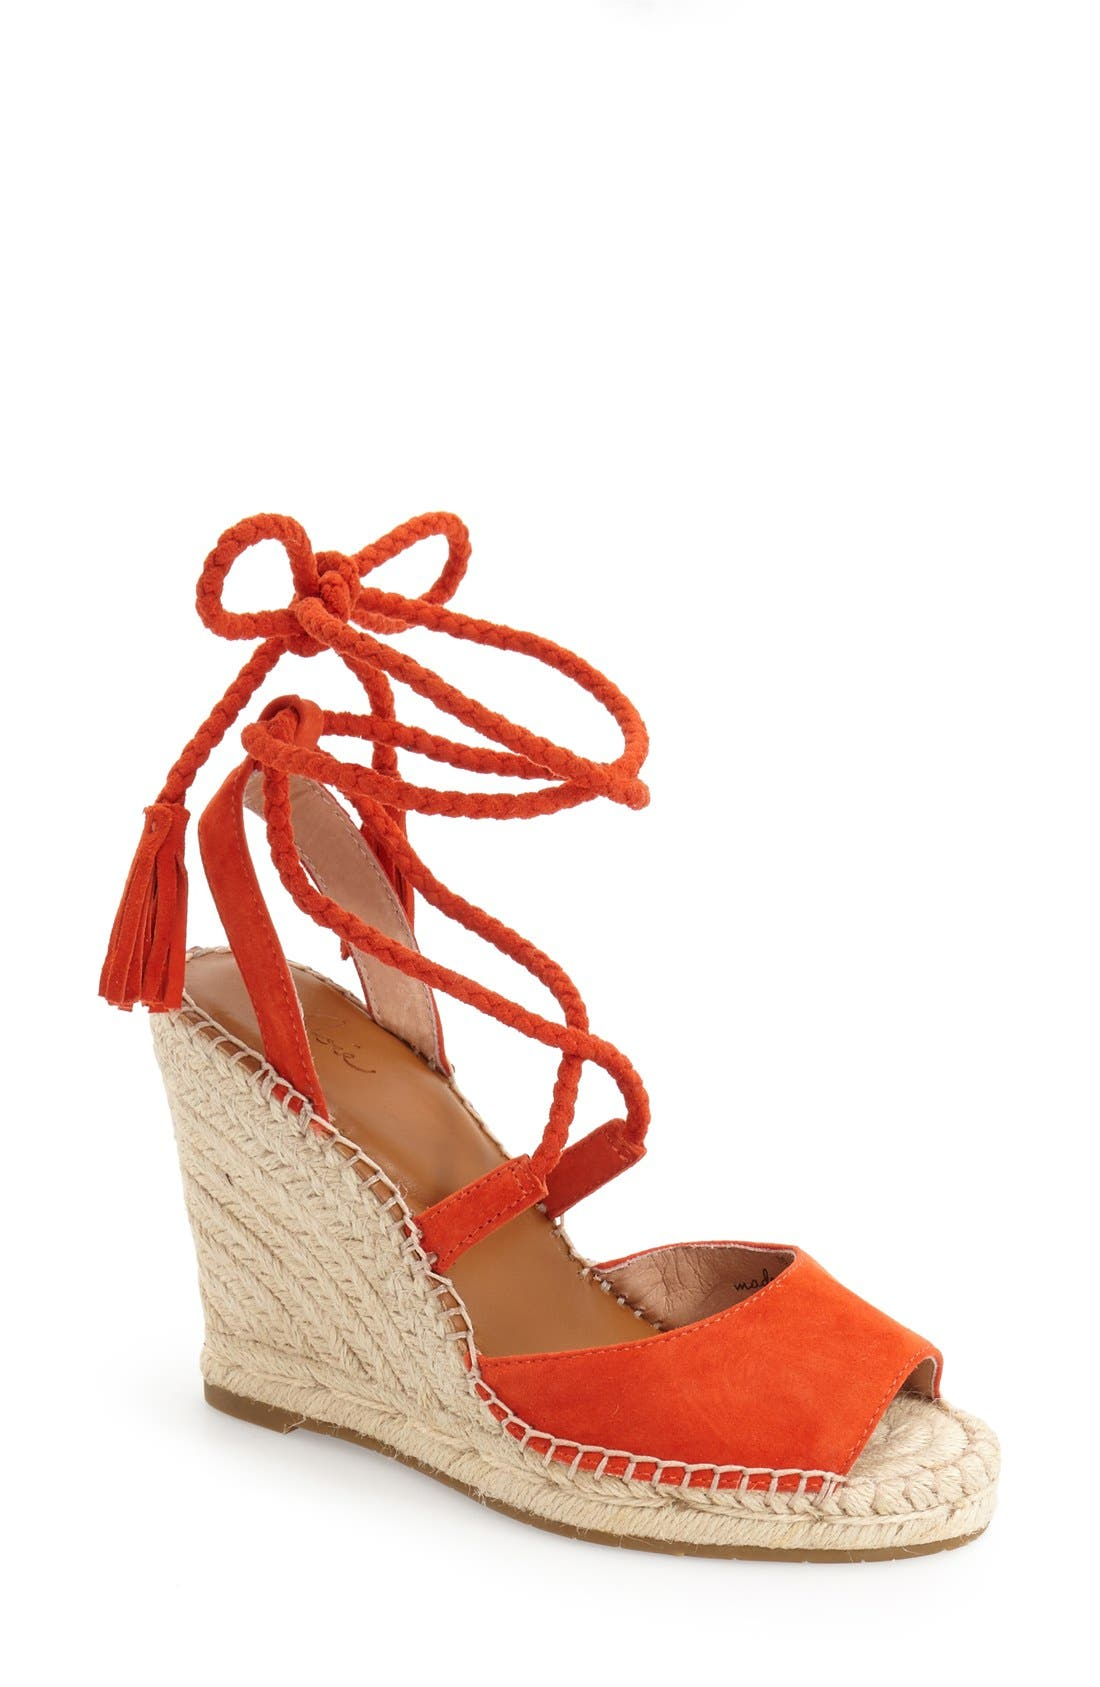 Alternate Image 1 Selected - Joie 'Phyllis' Espadrille Wedge (Women)